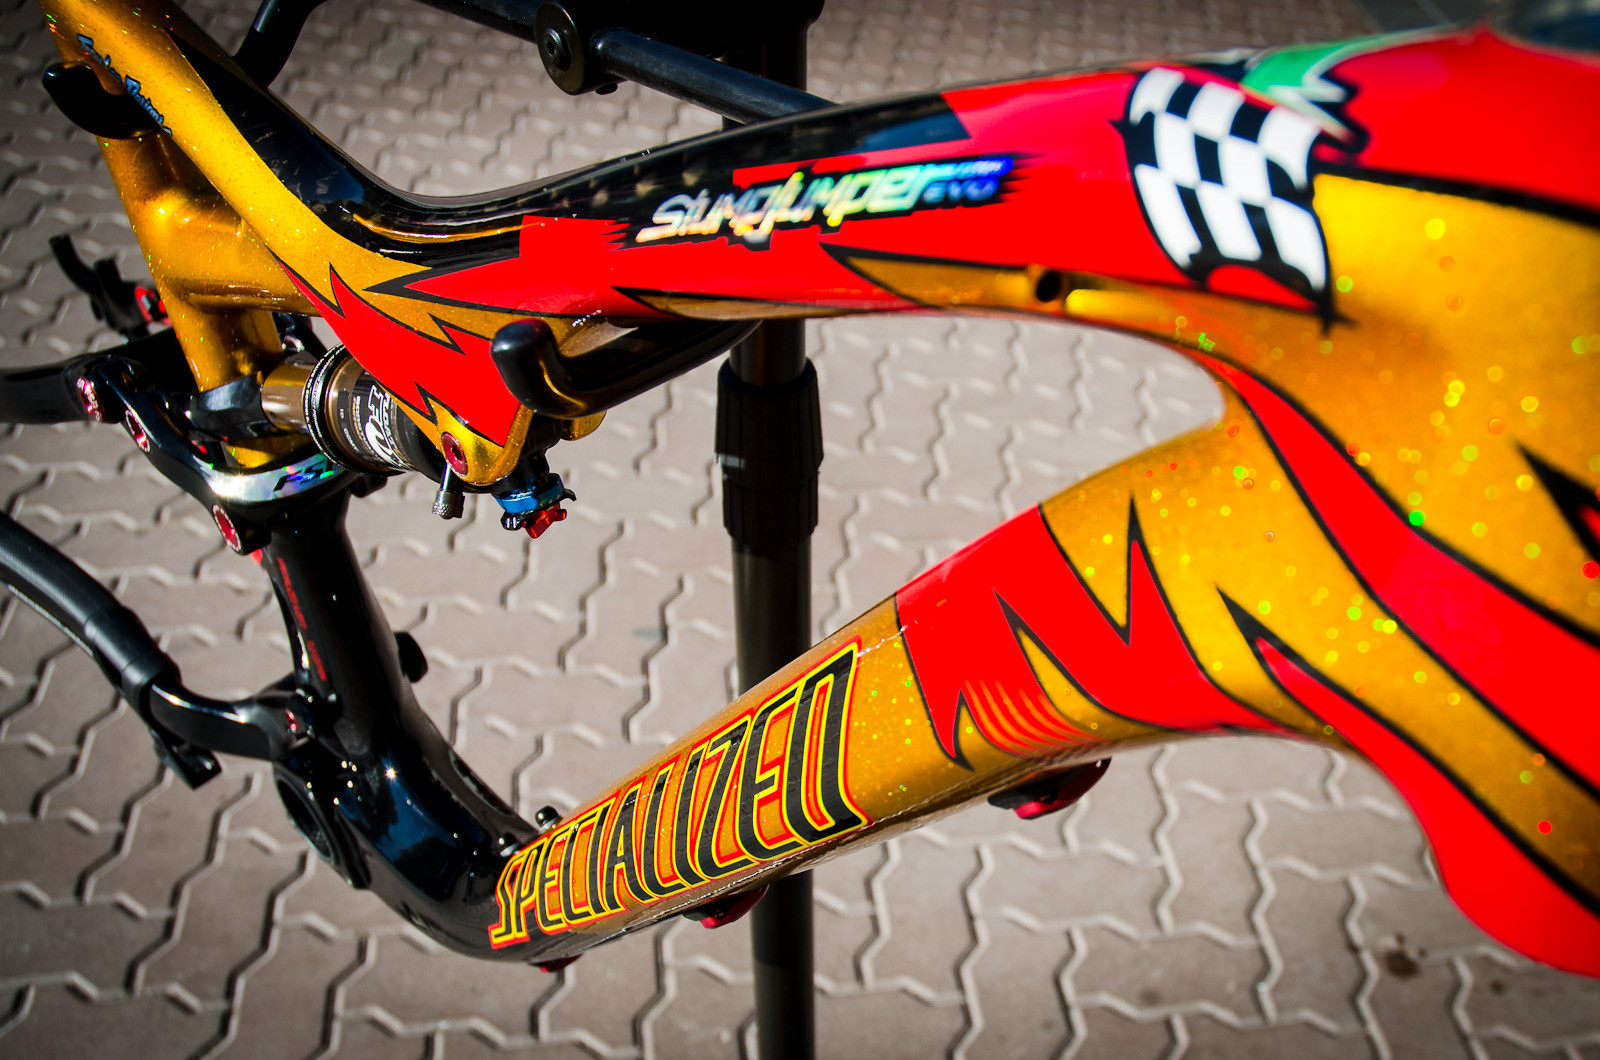 Made To Haul - First Look: Limited Edition 2013 Specialized / Troy Lee Designs Frames - Mountain Biking Pictures - Vital MTB